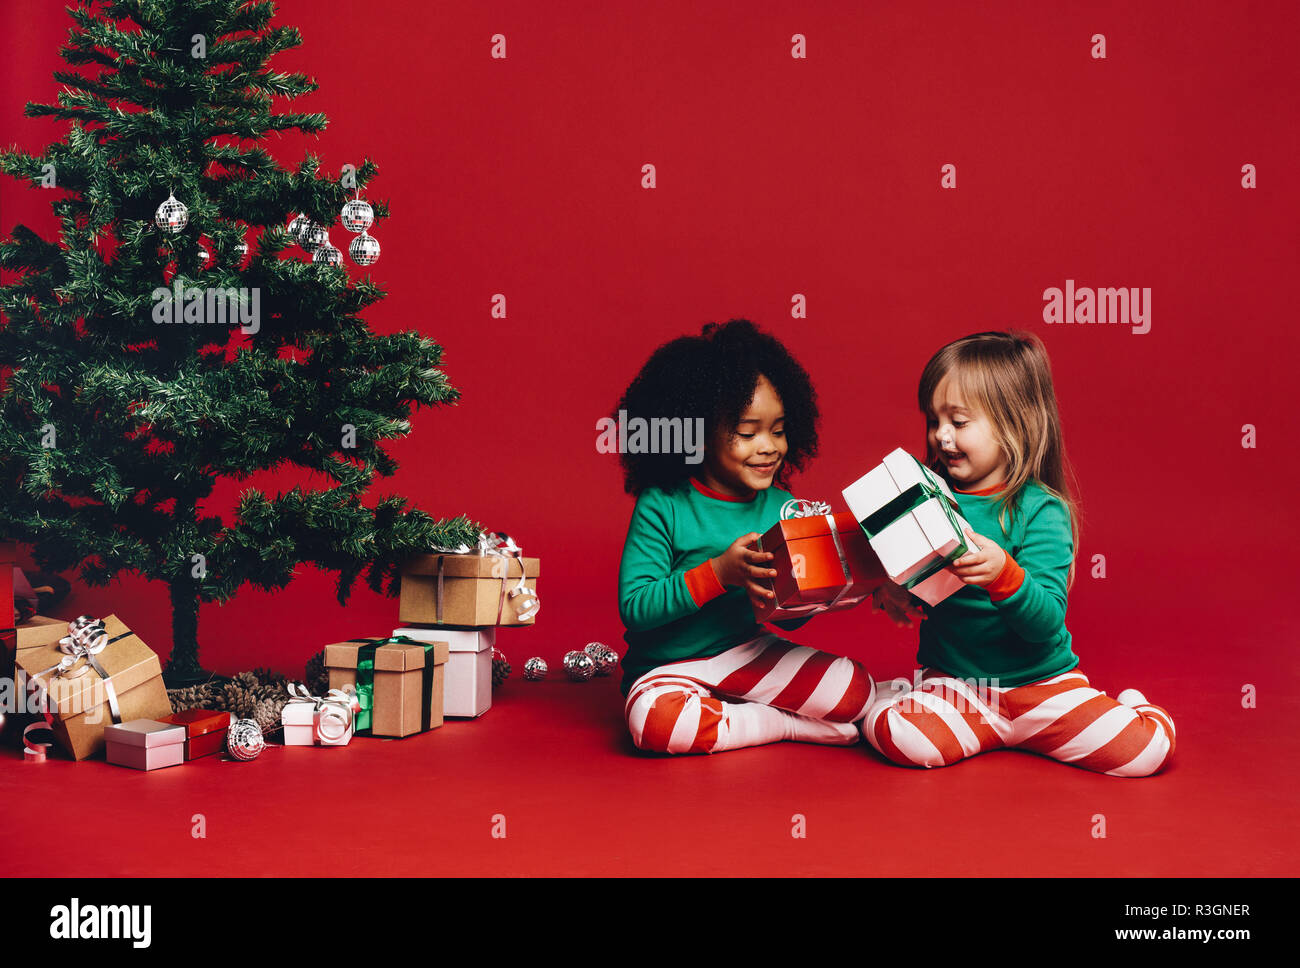 Little Girls Sitting Beside A Christmas Tree Playing With Their Gift Boxes Kids Exchanging Christmas Gifts With A Decorated Christmas Tree And Gift B Stock Photo Alamy